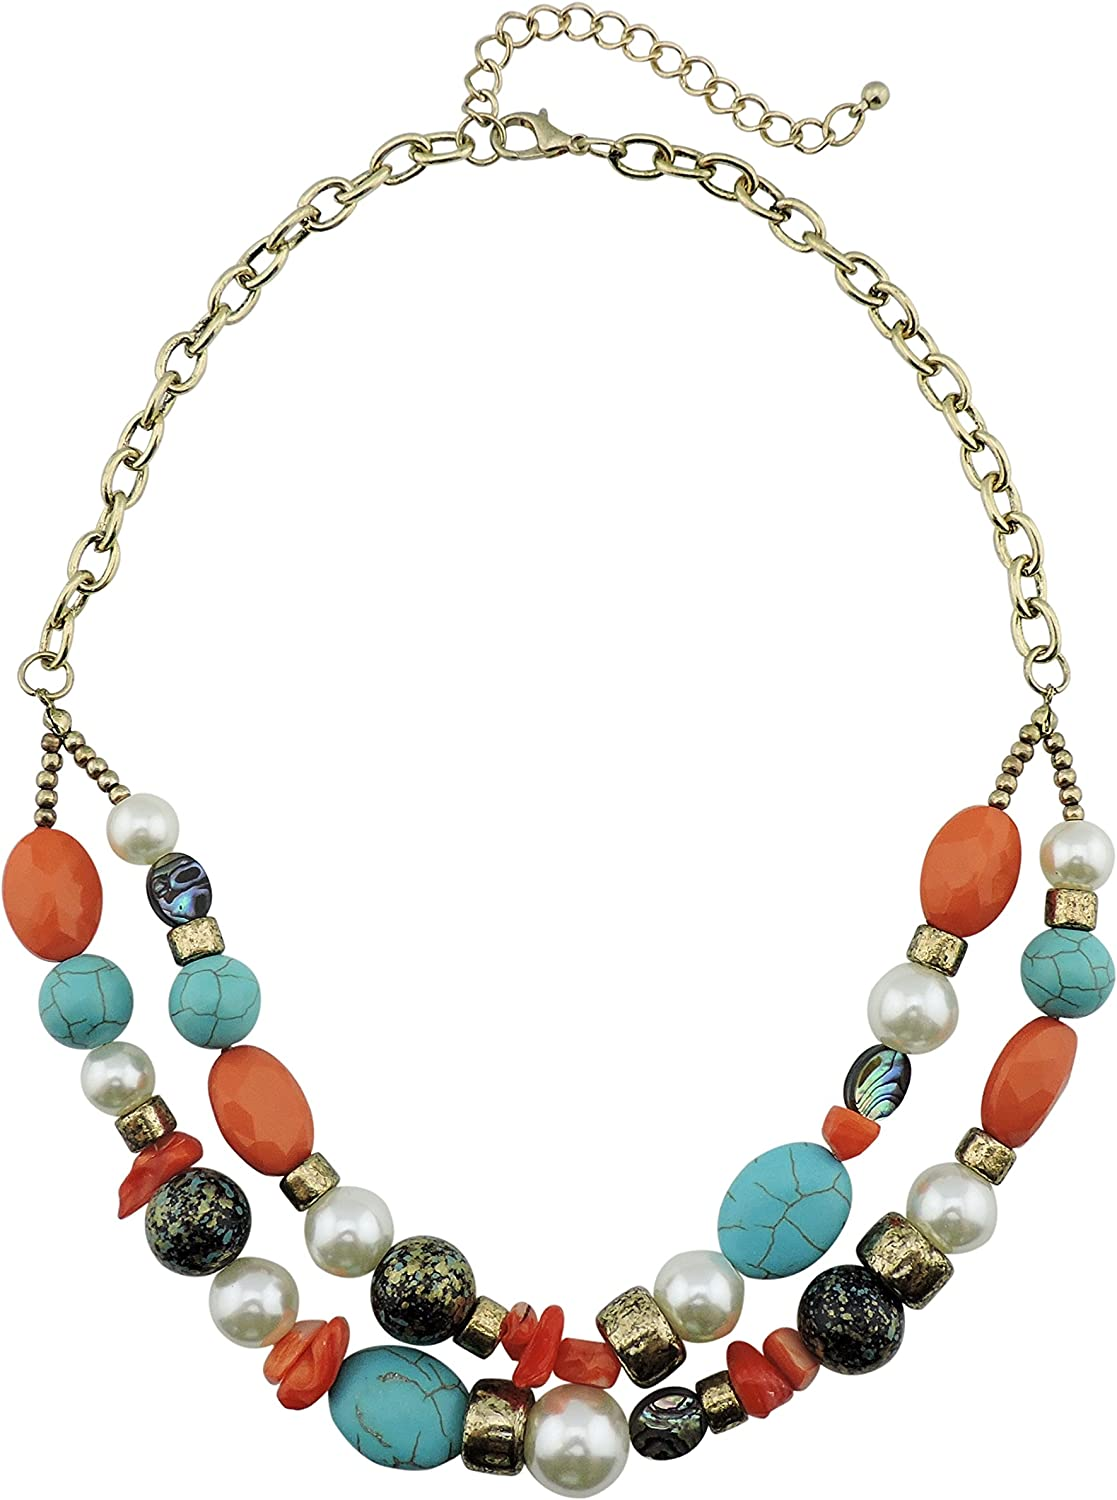 Firstmeet 2 Layer Statement unisex Turquoise Collar Women for Colorado Springs Mall Necklace